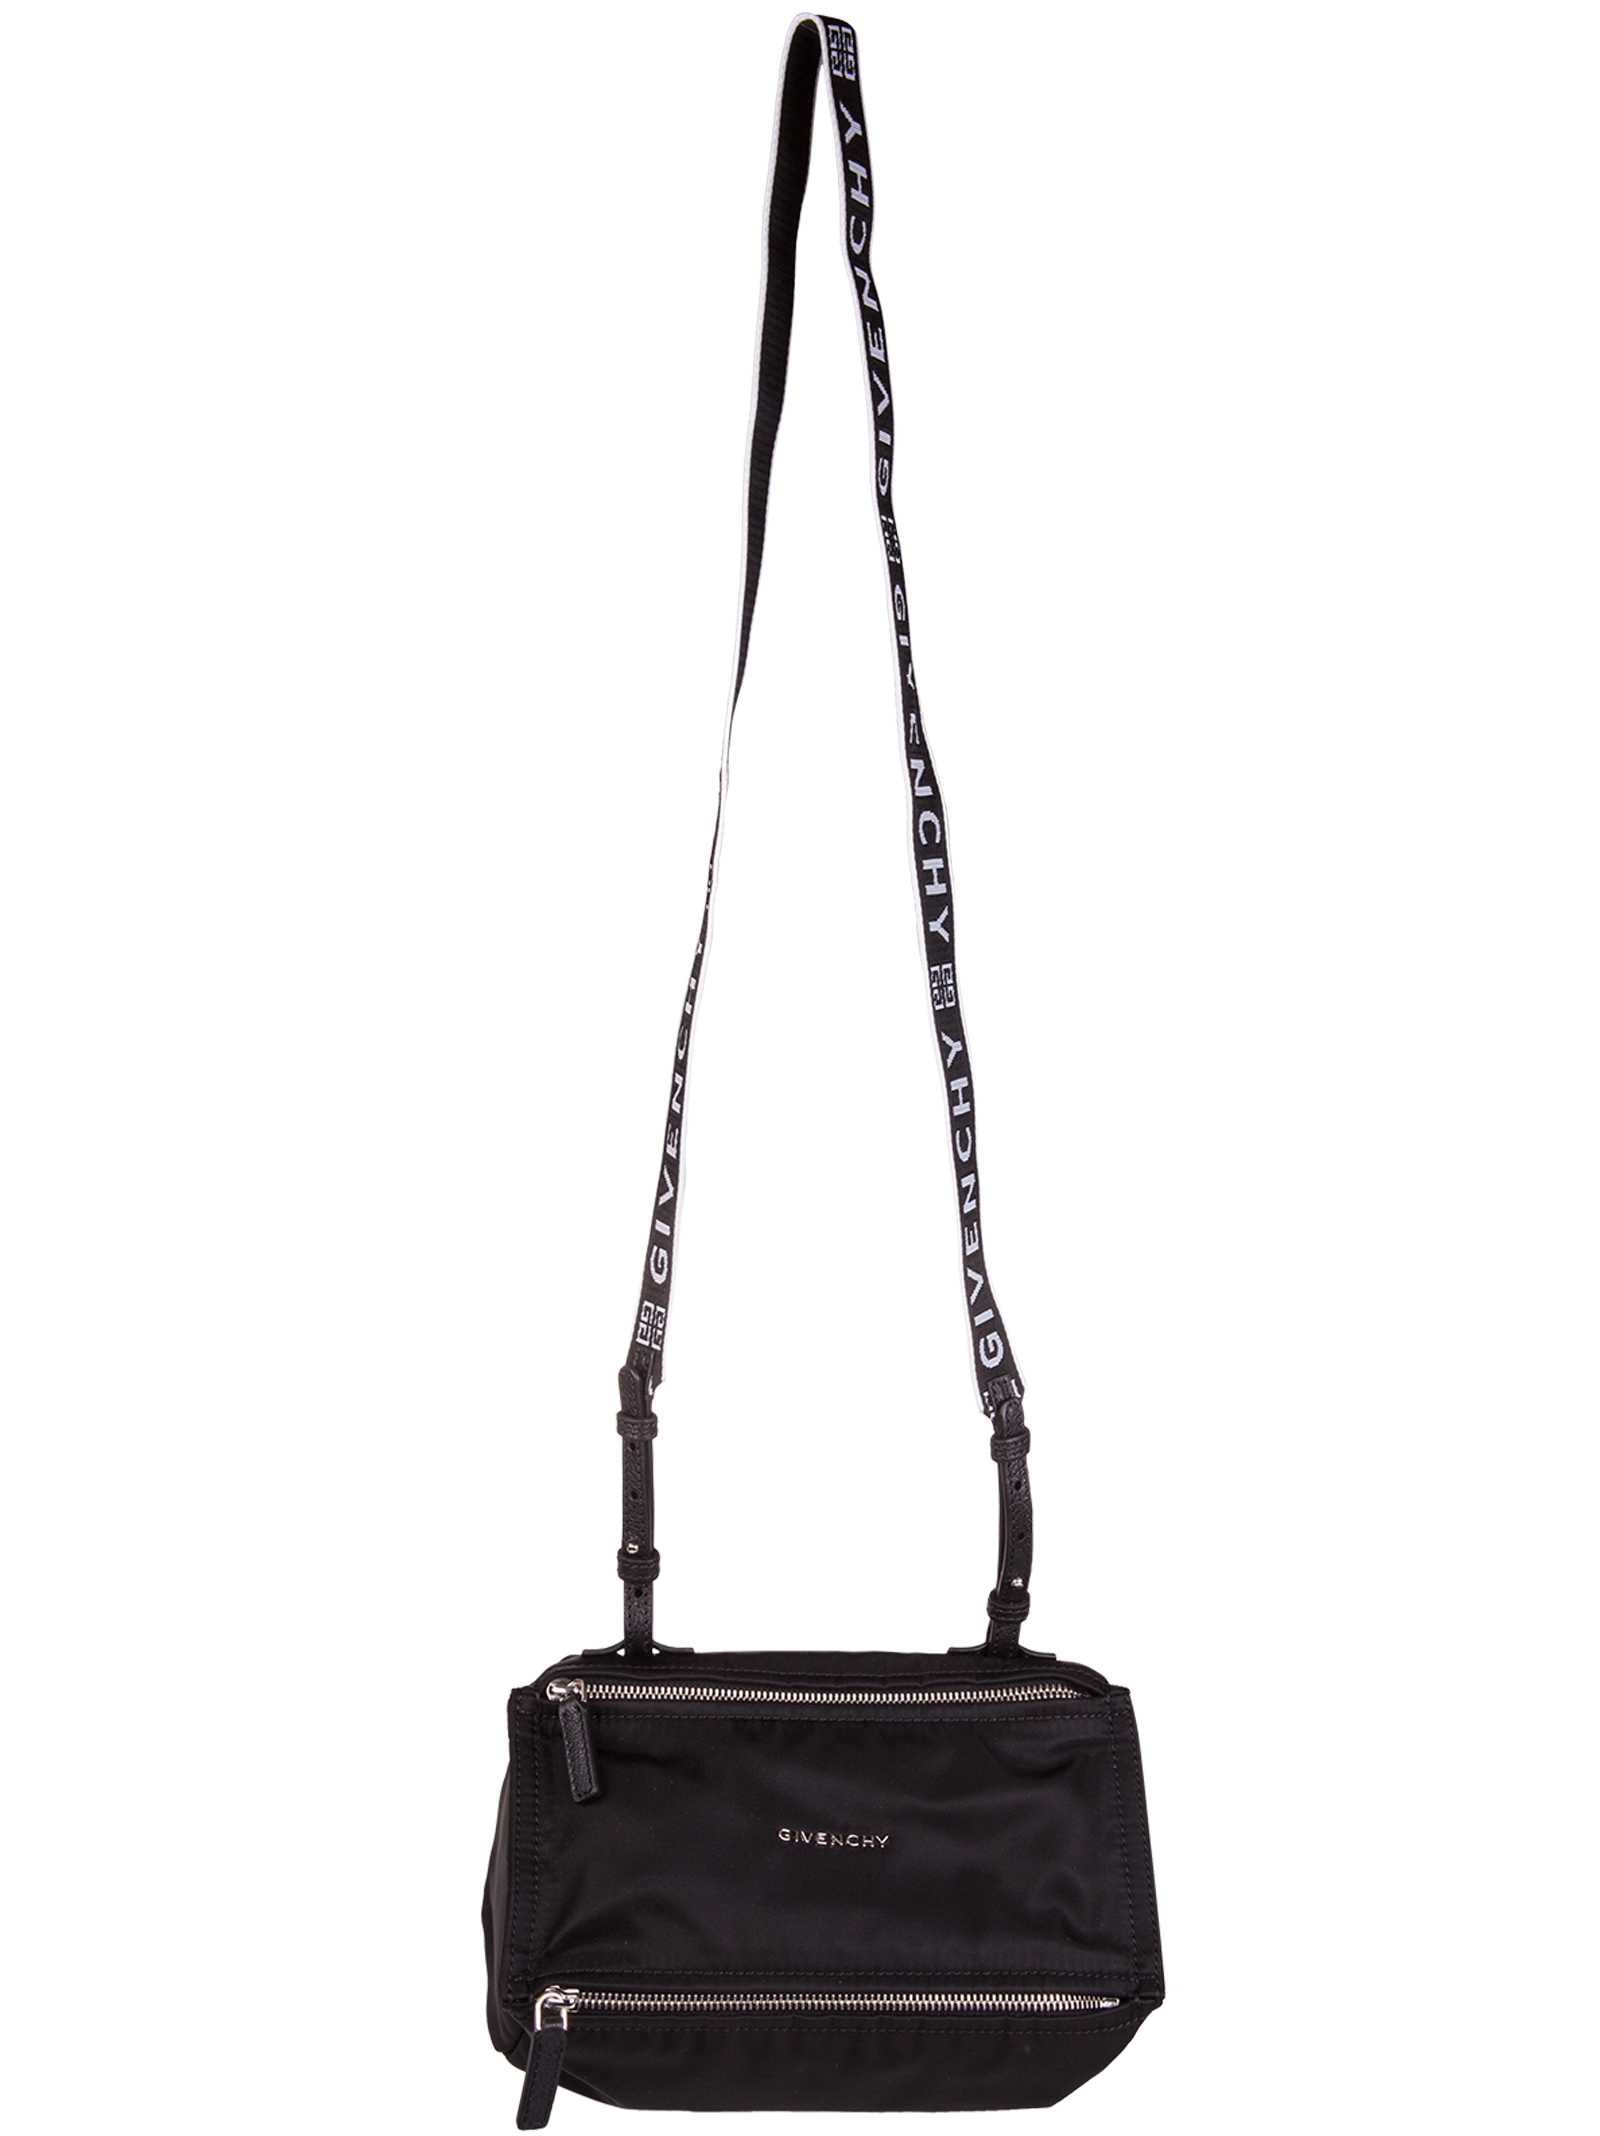 Givenchy. Black  ICON Pandora Mini shoulder bag in nylon with shoulder strap  with brand logos 480a6a1786706